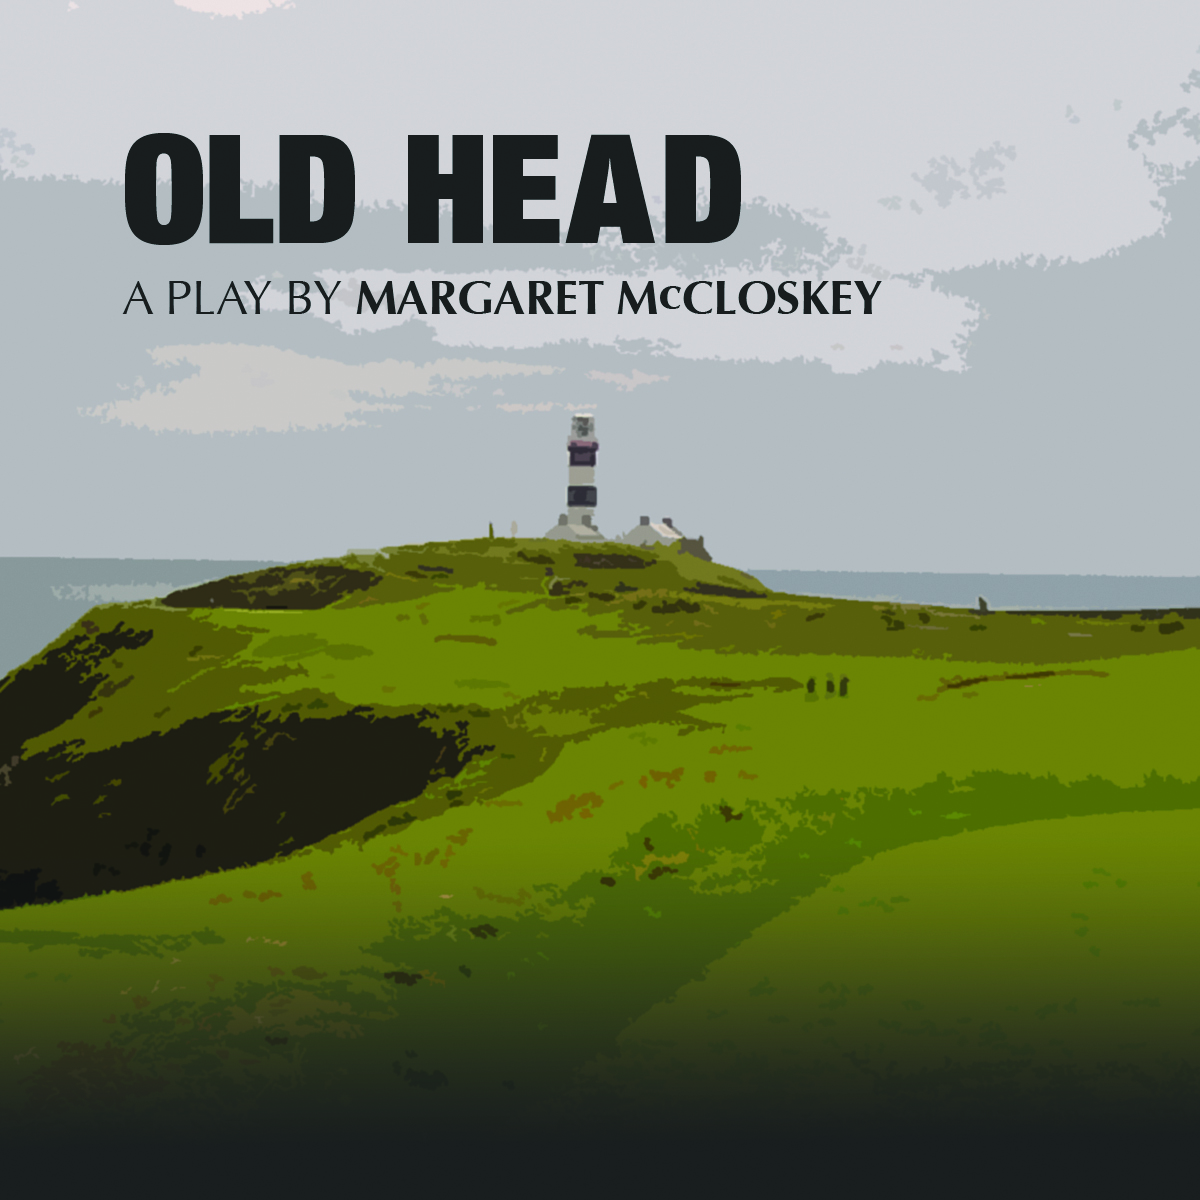 OLD HEAD  by Margaret McCloskey          In the provincial Irish town of Old Head, Annie, an American traveler, meets a charminglibrarian -- but their innocent flirtation has deep consequences. Exploringthe complicated relationship between the mentally ill and their caretakers, OLD HEAD is a newexamination of one of life's oldest battles: pleasure versus duty.